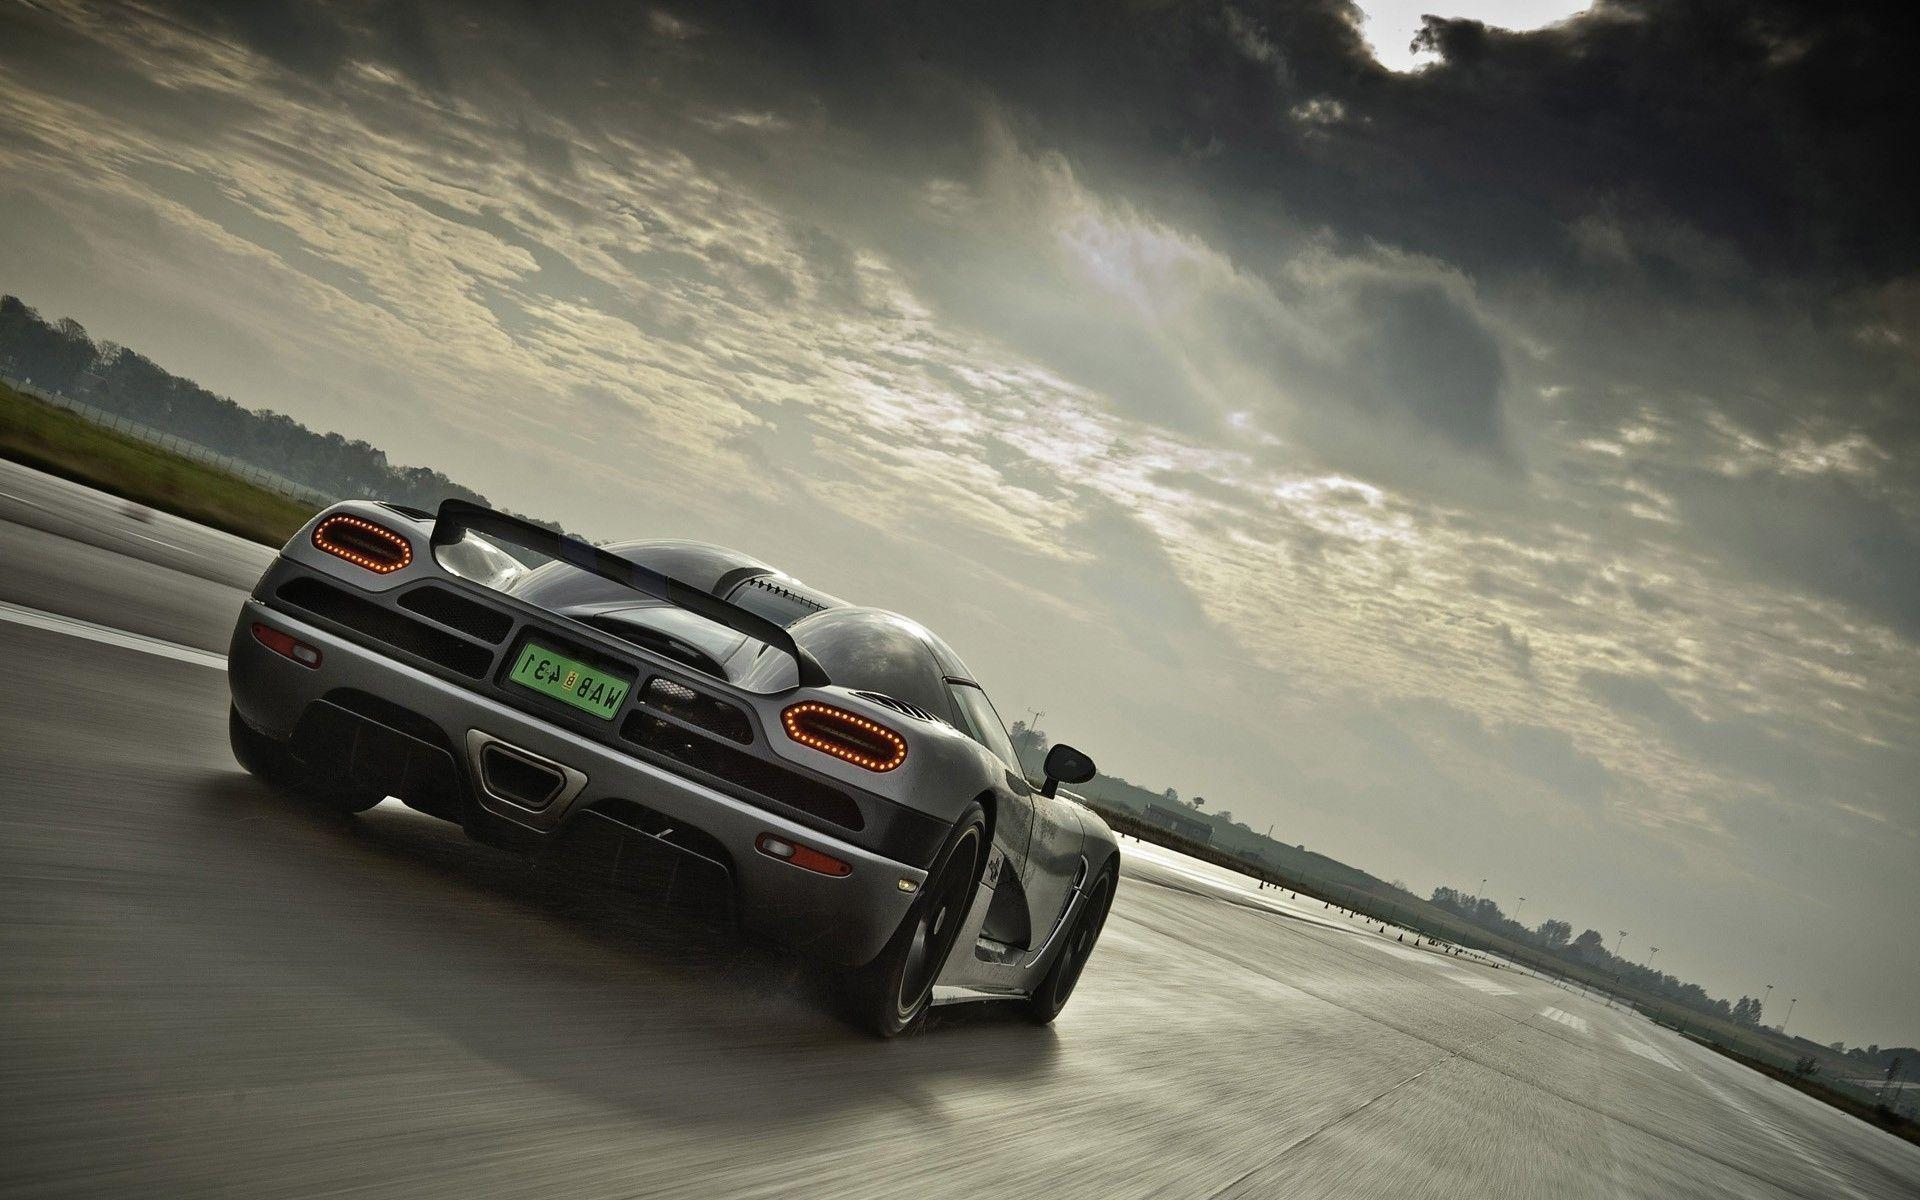 Koenigsegg Agera R, HD Cars, 4k Wallpapers, Image, Backgrounds